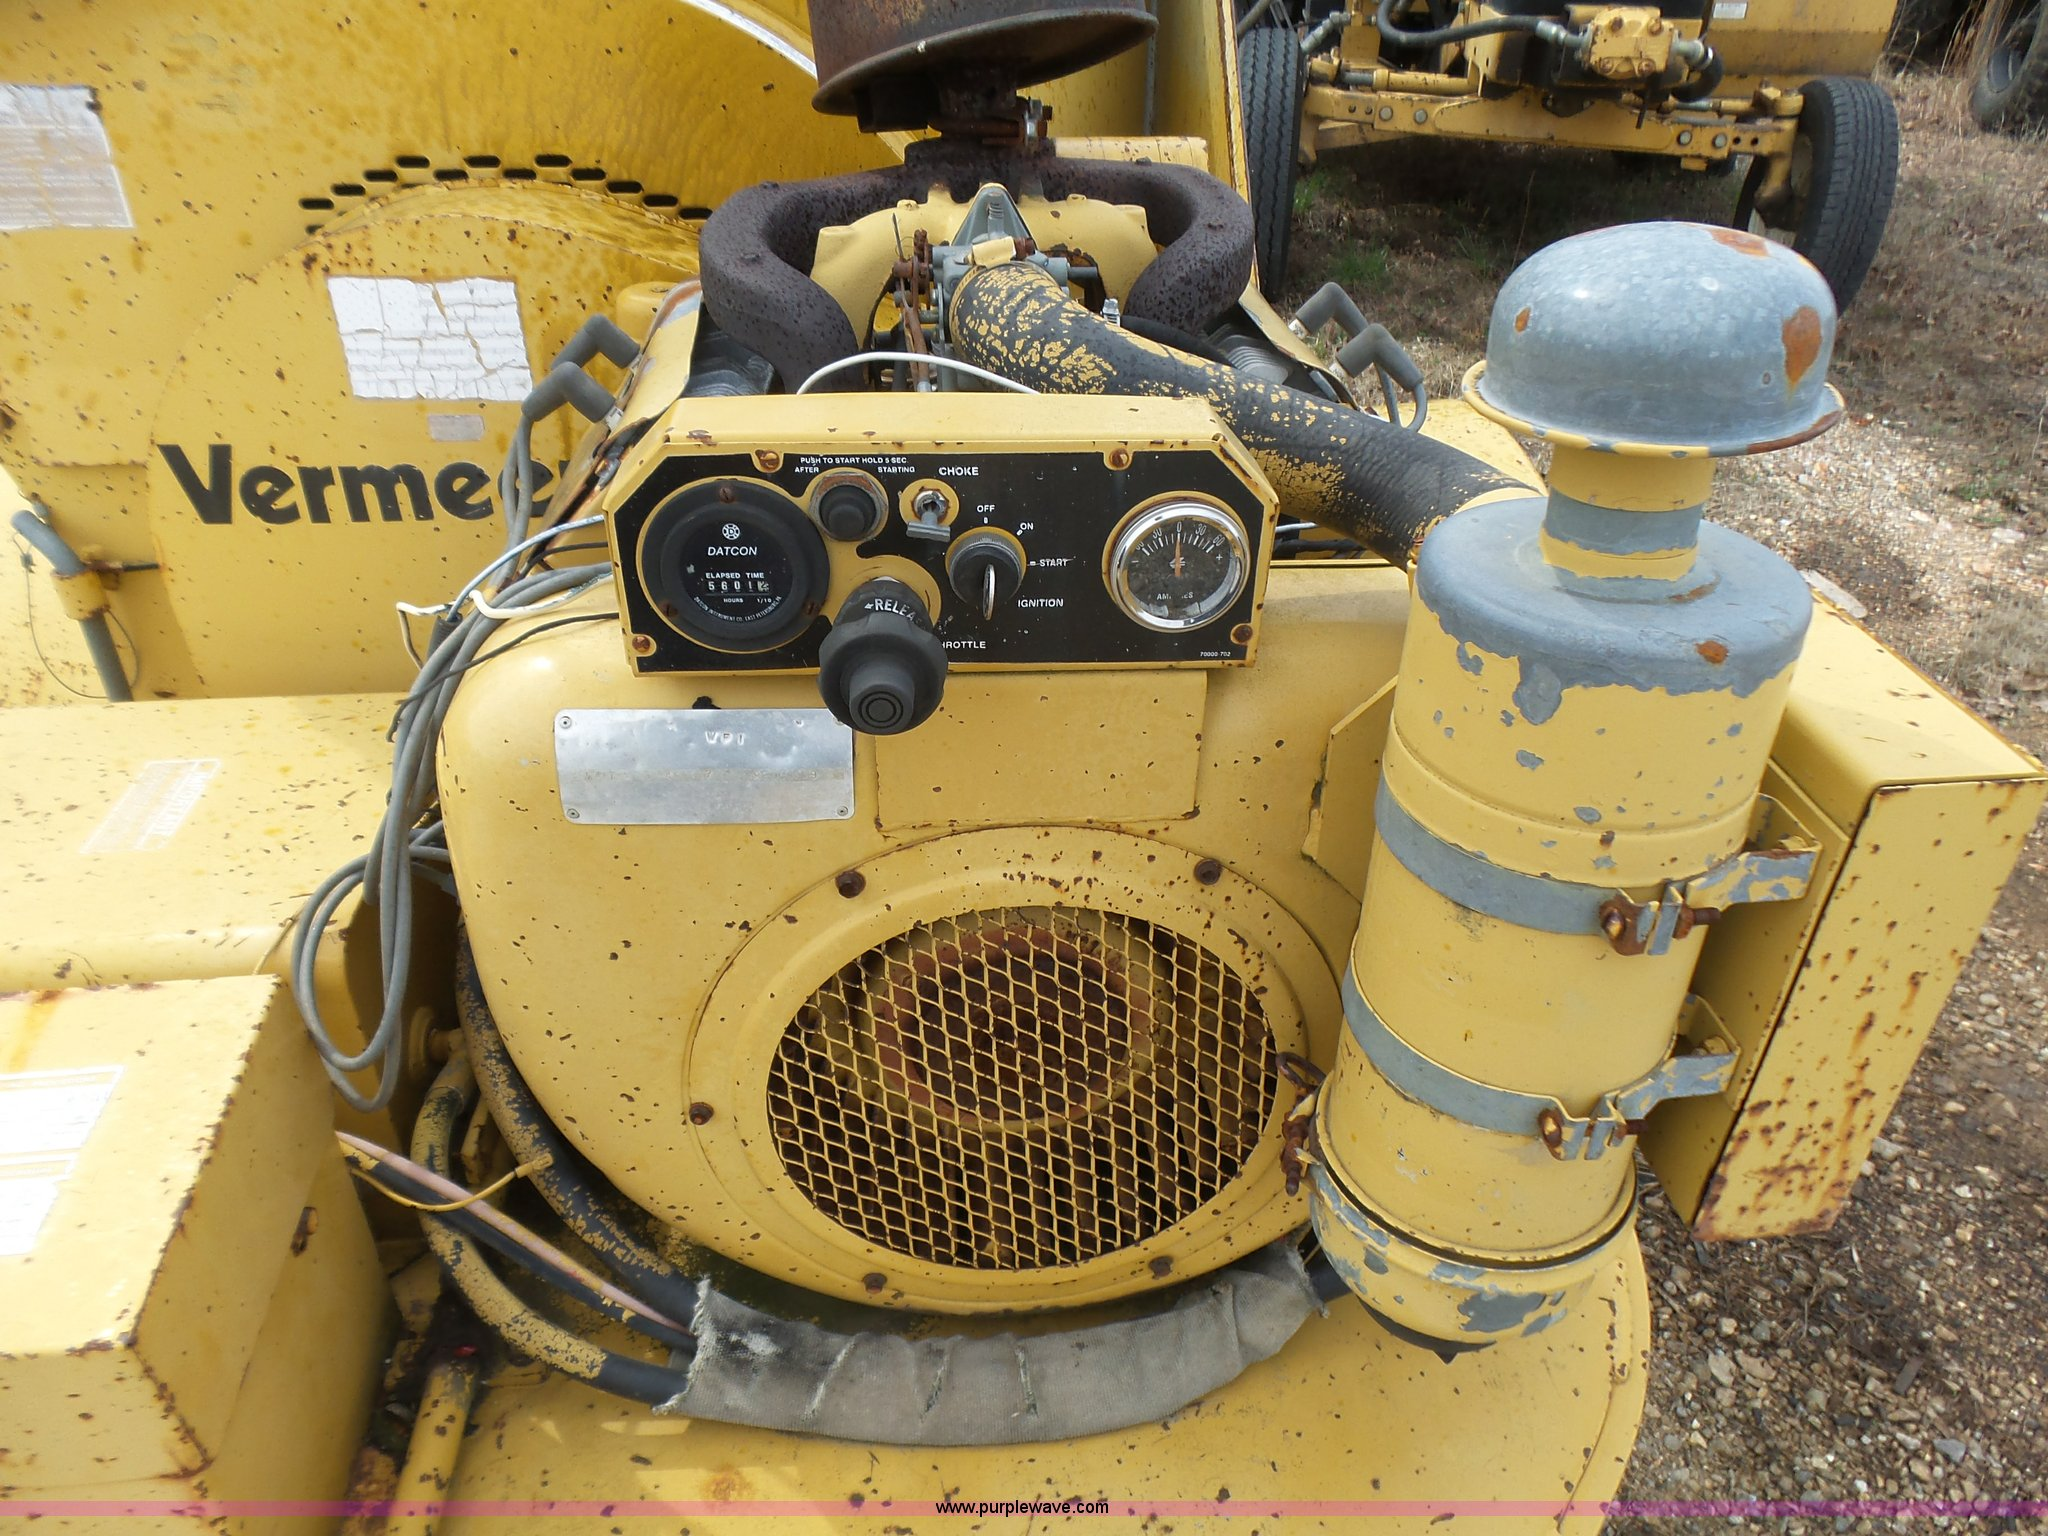 Vermeer 935 wood chipper | Item L5461 | SOLD! April 20 Vehic